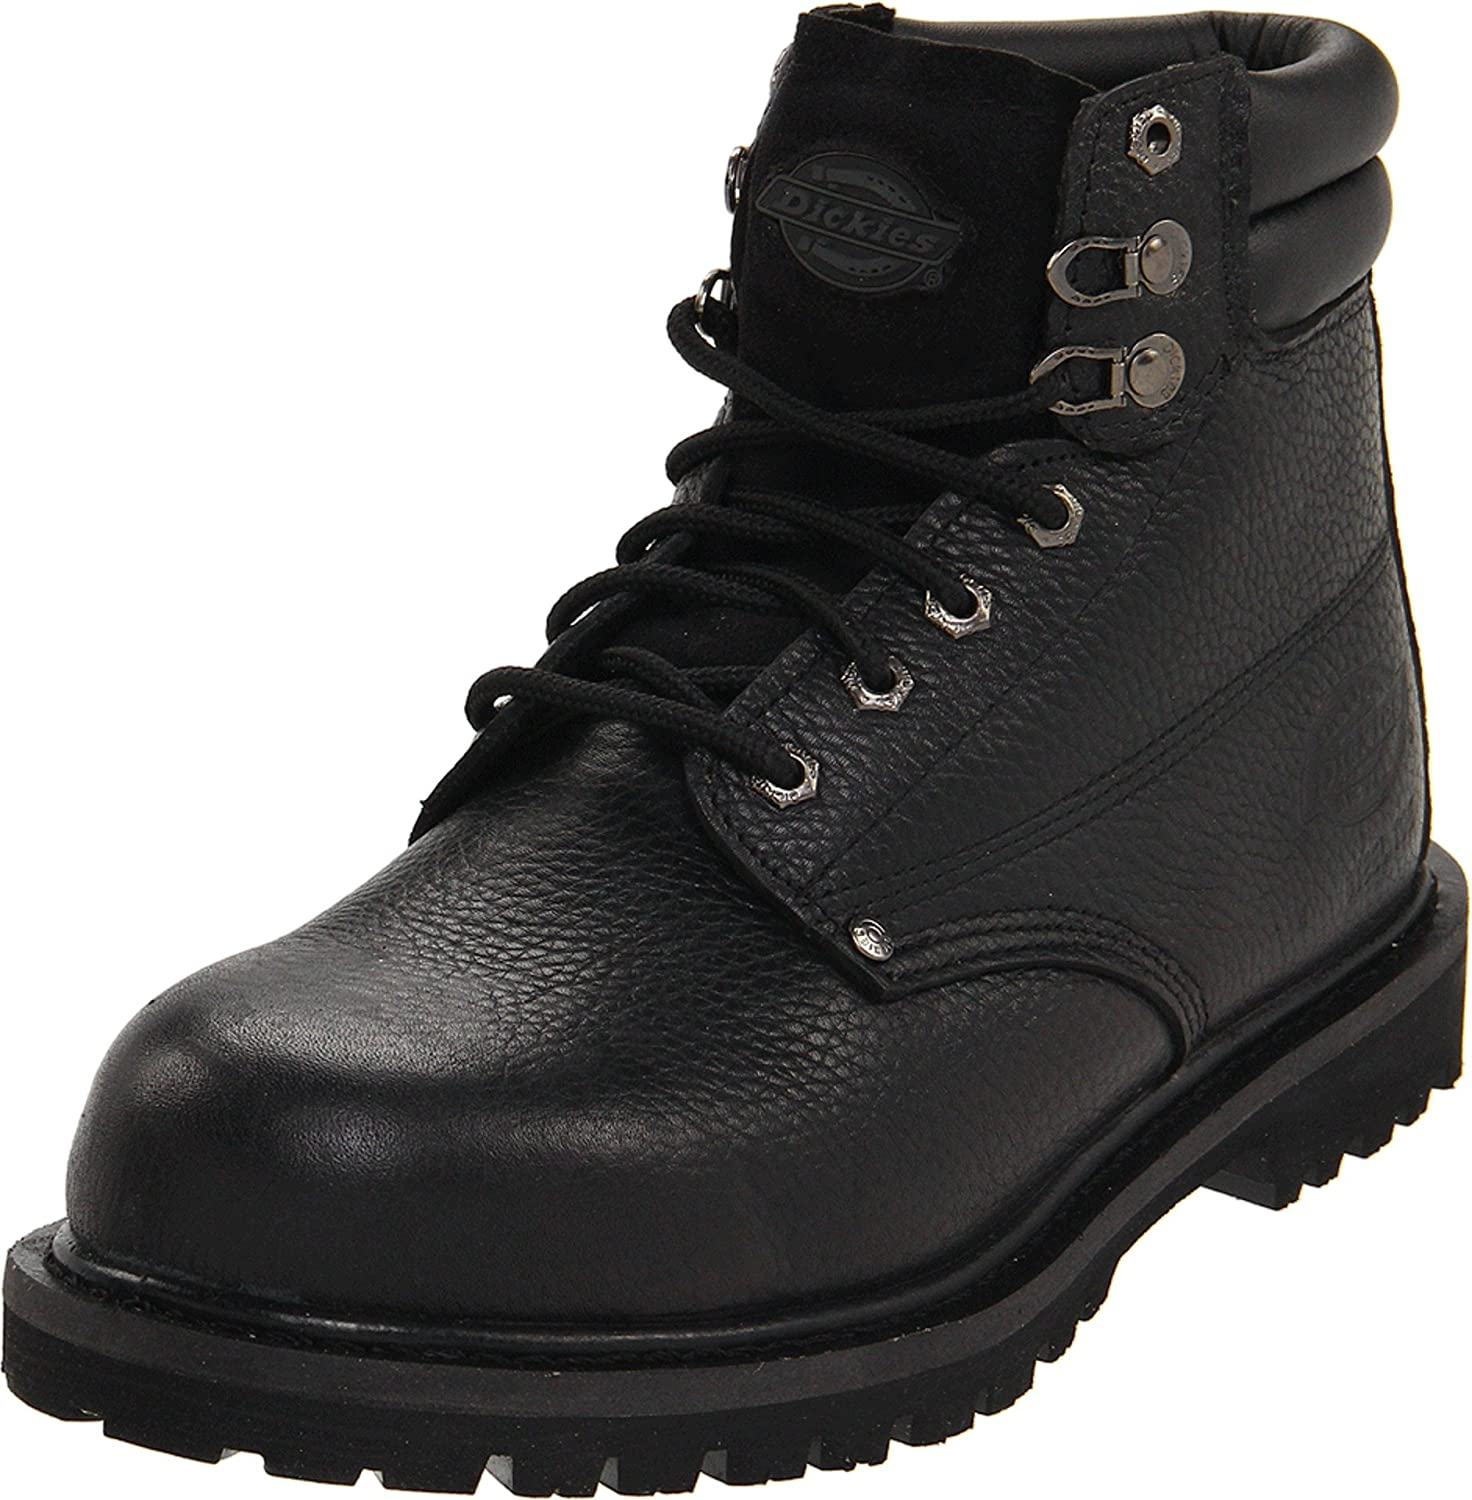 Dickies Men's Raider Steel Toe Work Shoe кашпо для цветов ive planter keter 17196813 page 4